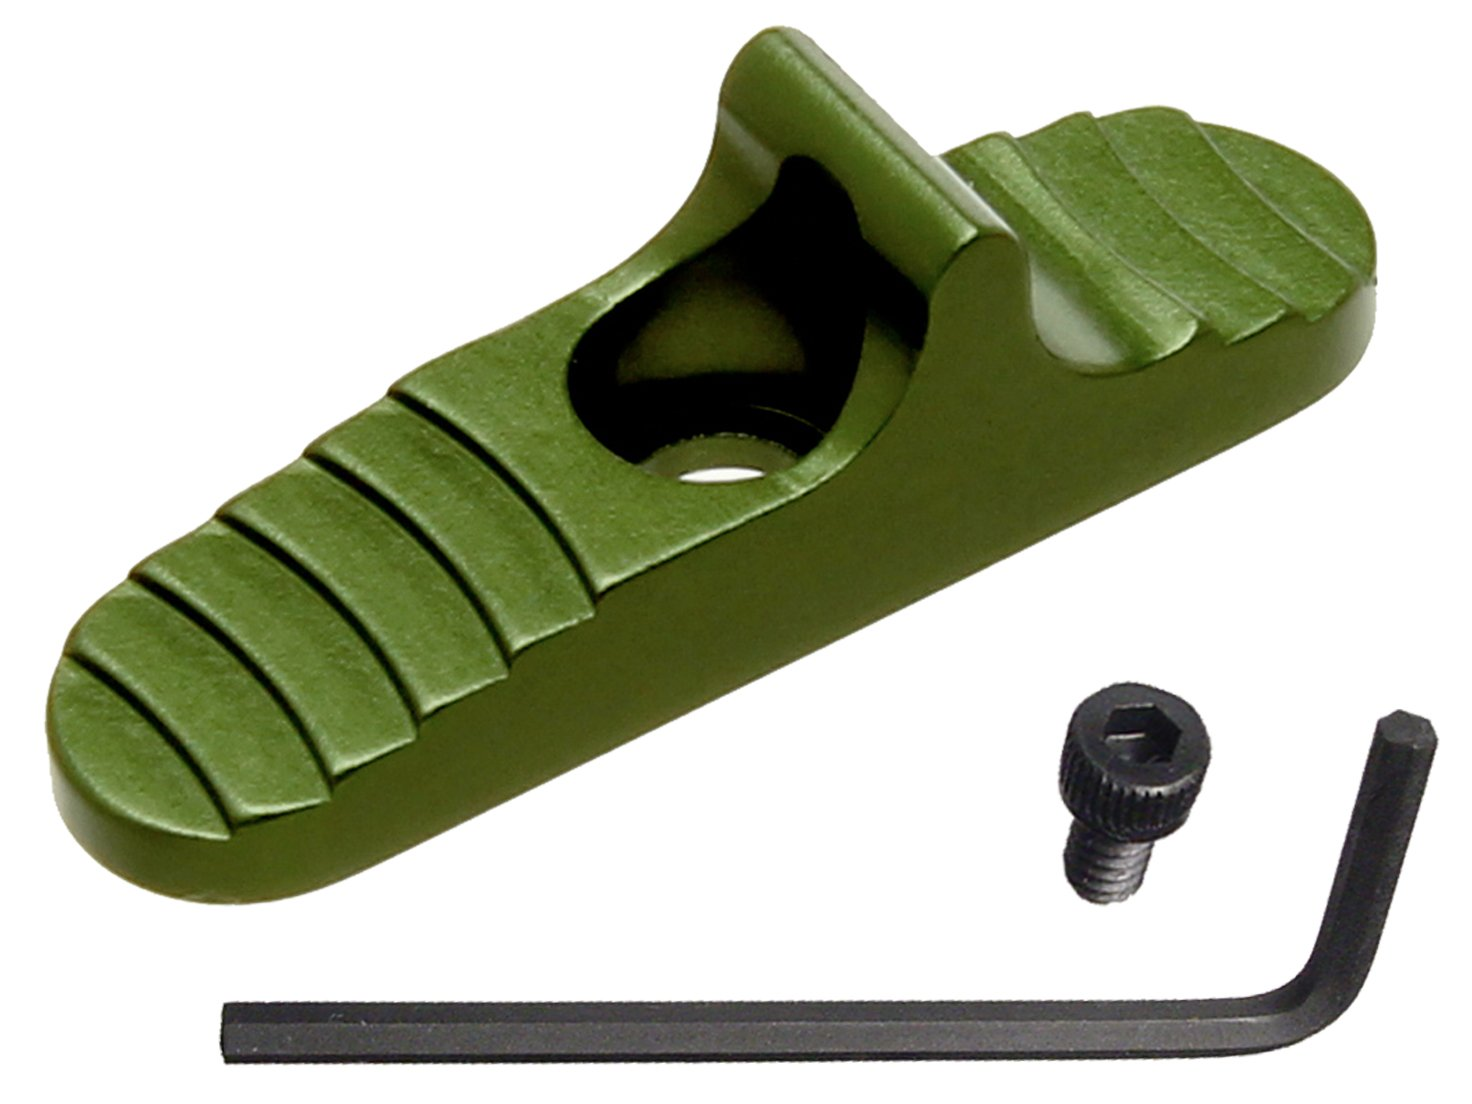 for Mossberg 500 590 835 930 935 Shockwave Enhanced Tactical Slide Safety by NDZ Green